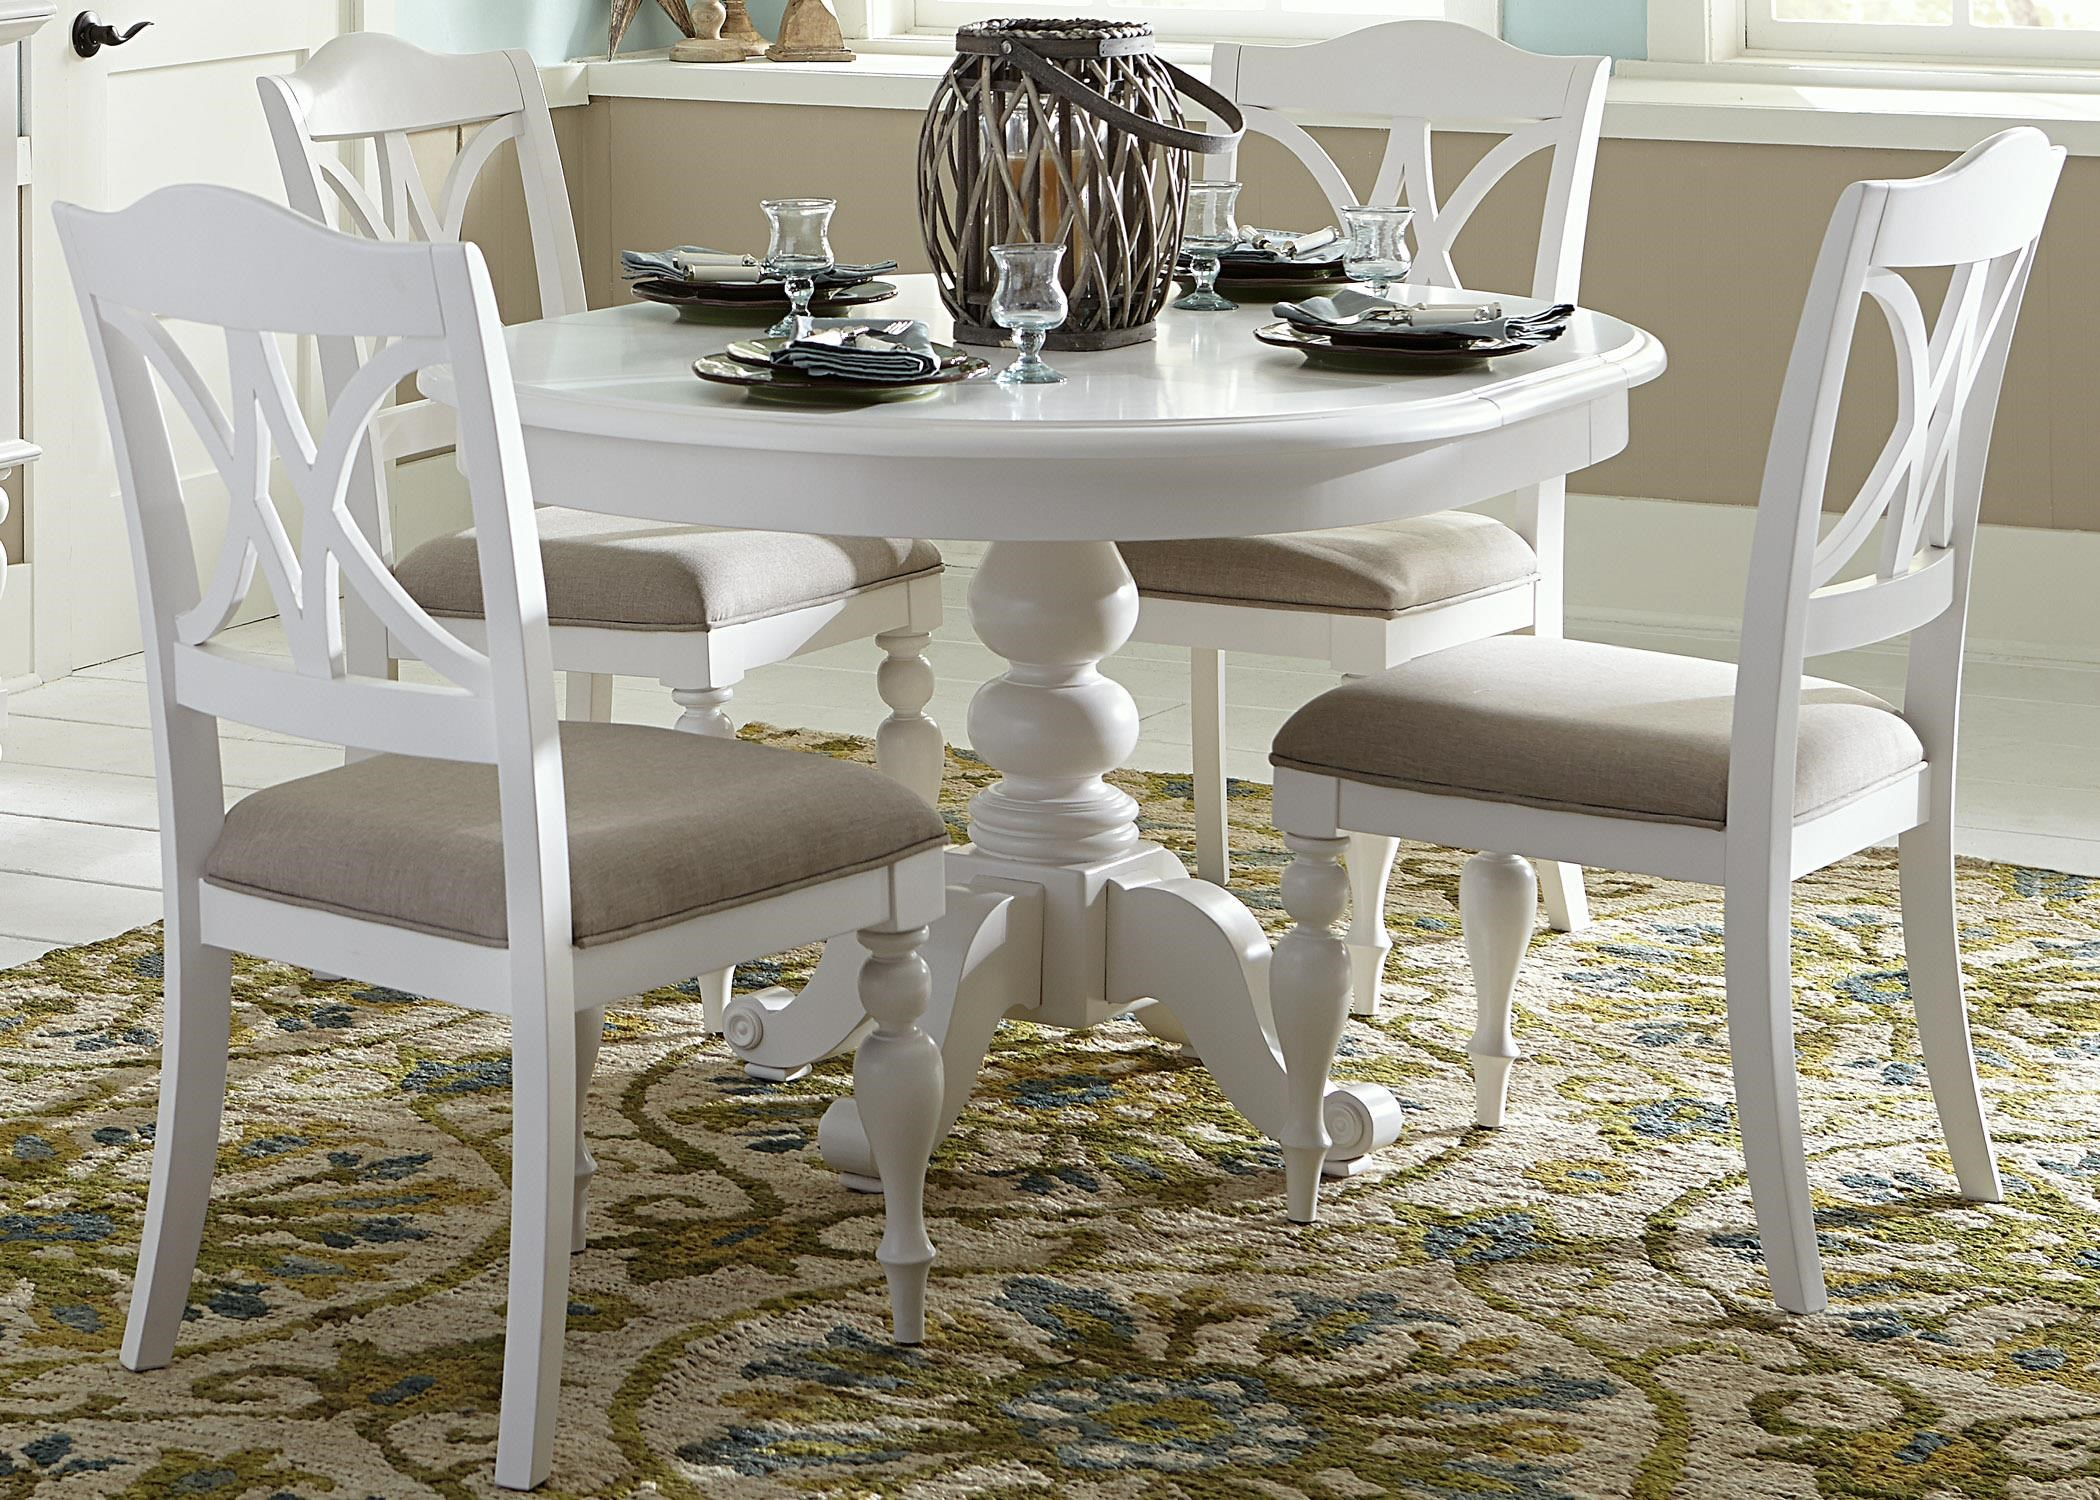 5-Piece Round Table Set with Turned Legs